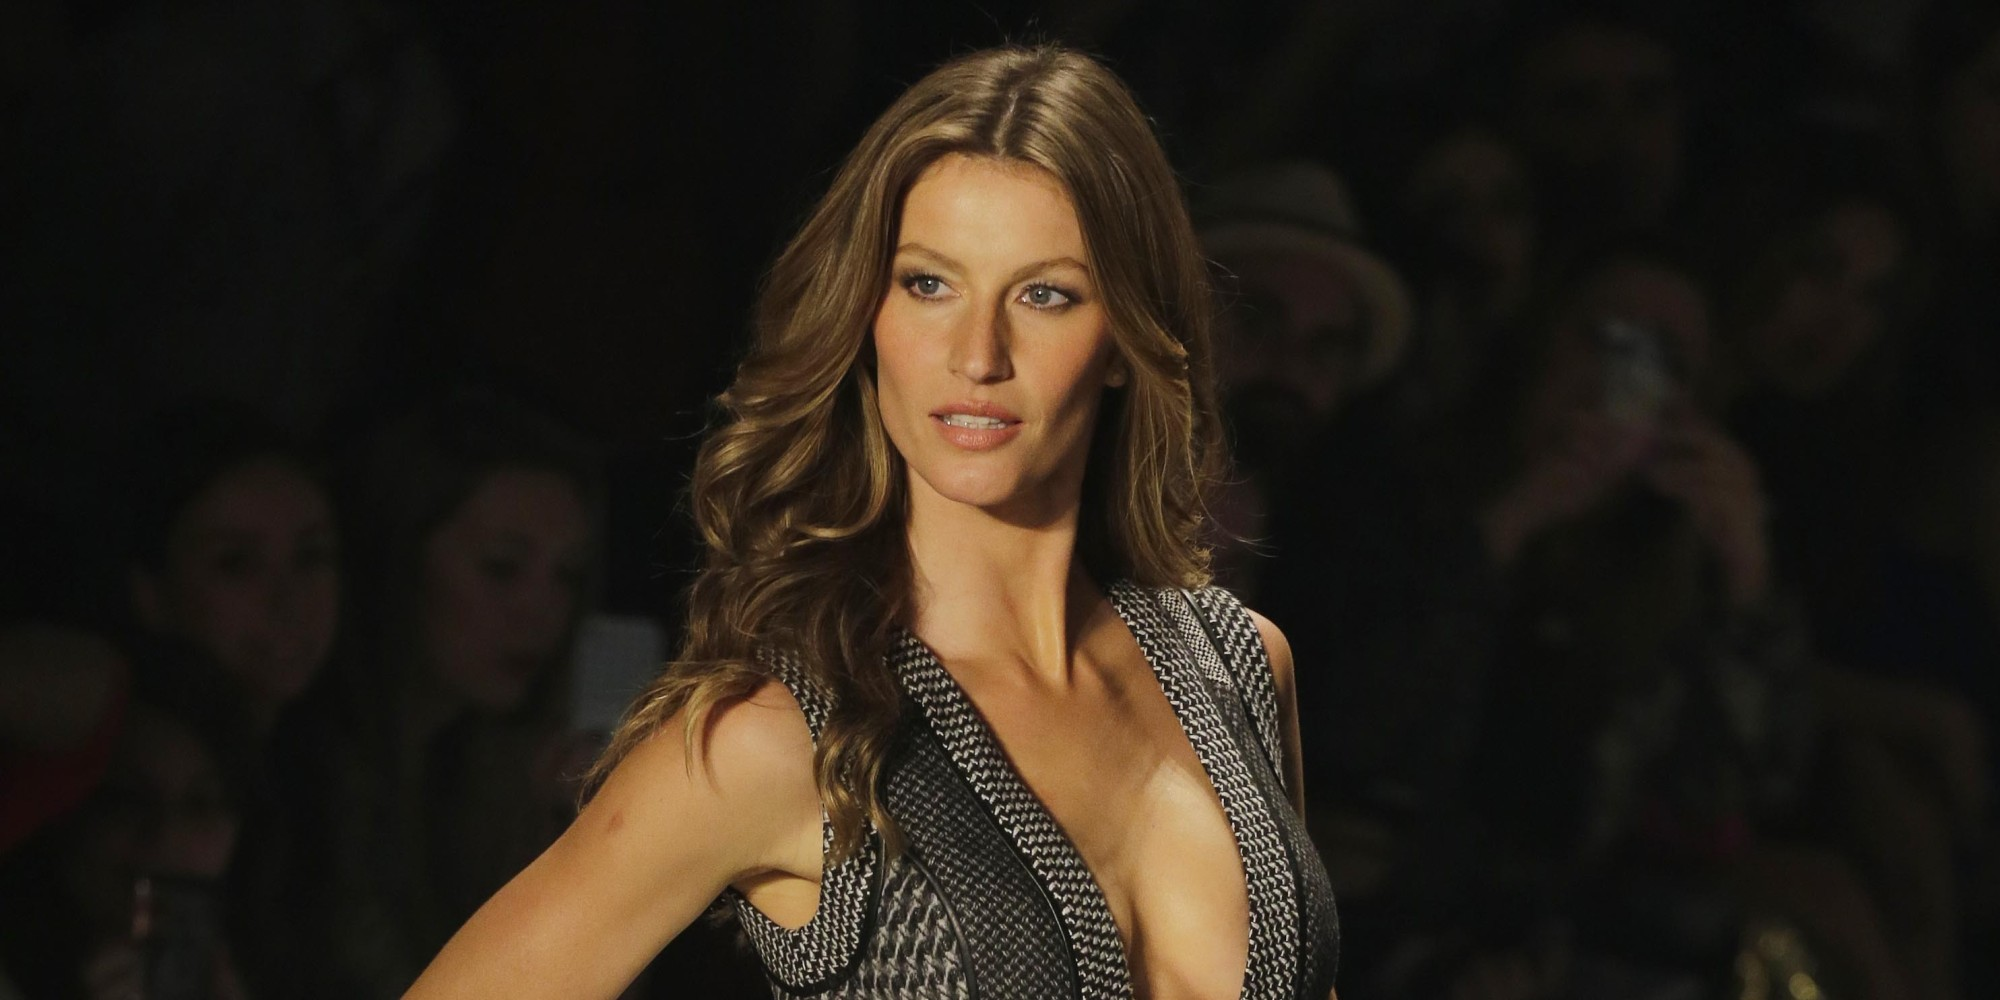 Gisele Bundchen Wallpapers High Resolution and Quality ... Gisele Bundchen Net